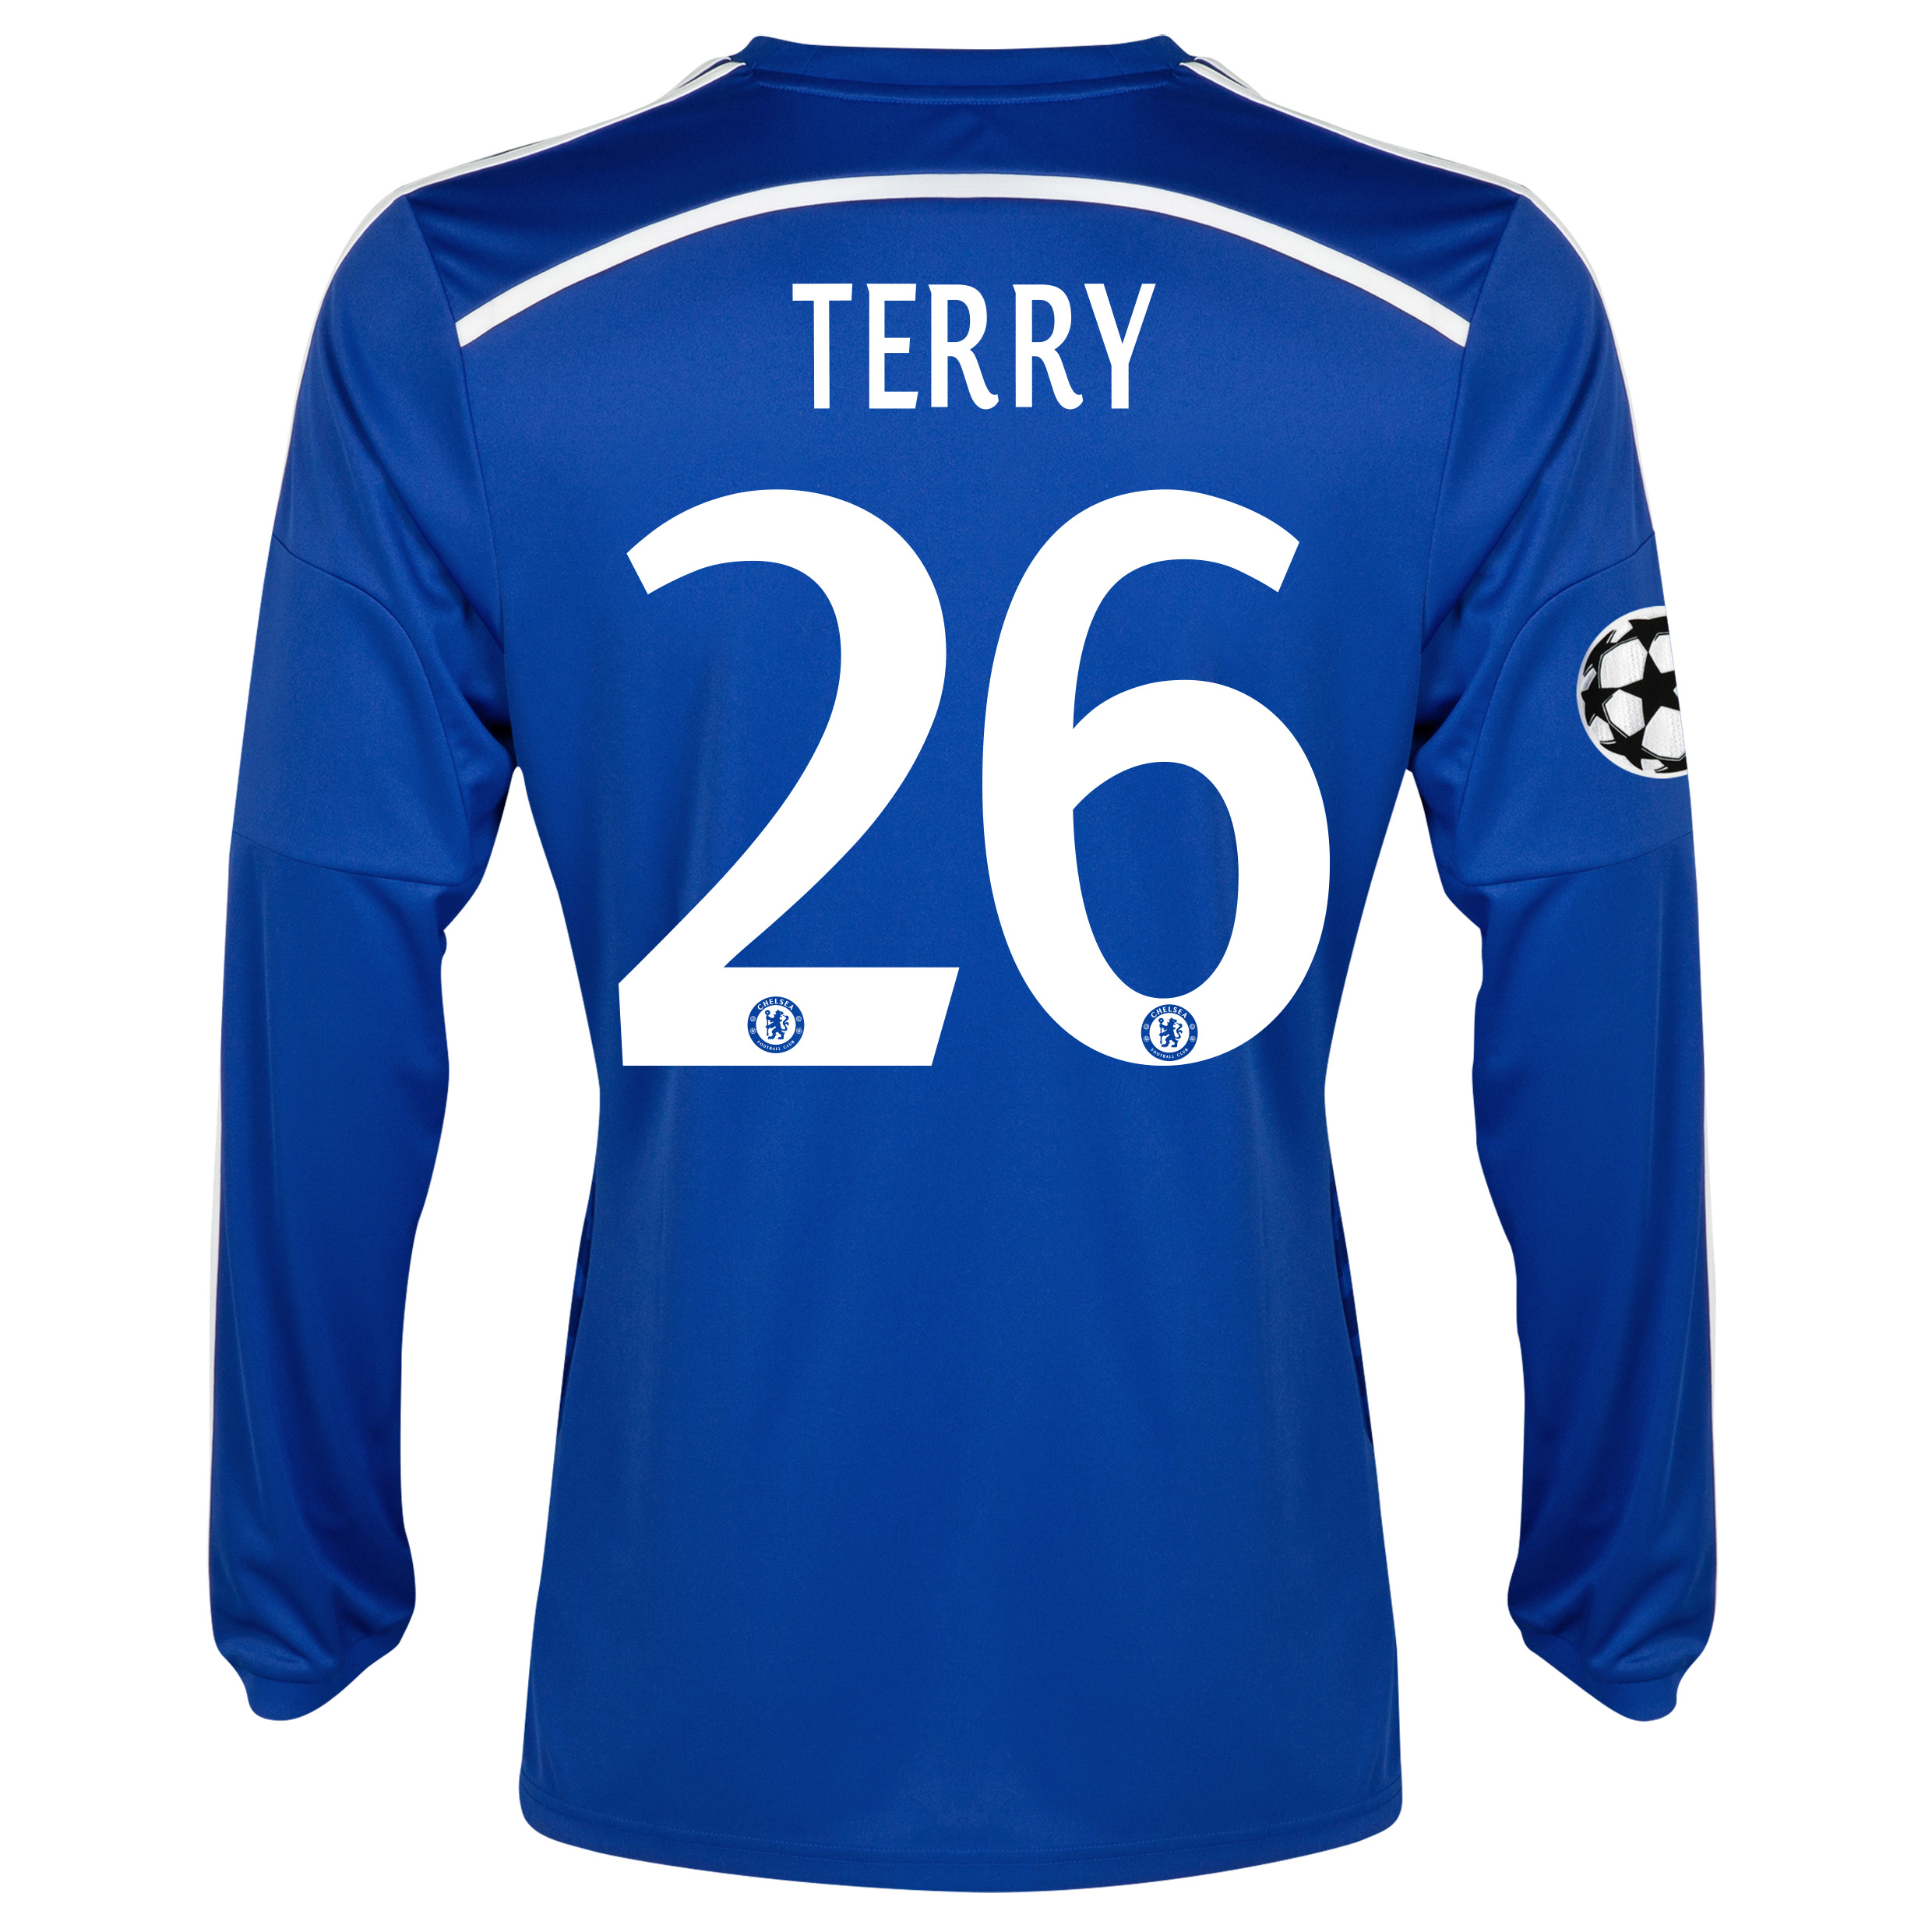 Chelsea UEFA Champions League Home Shirt 2014/15 - Long Sleeve Blue with Terry 26 printing